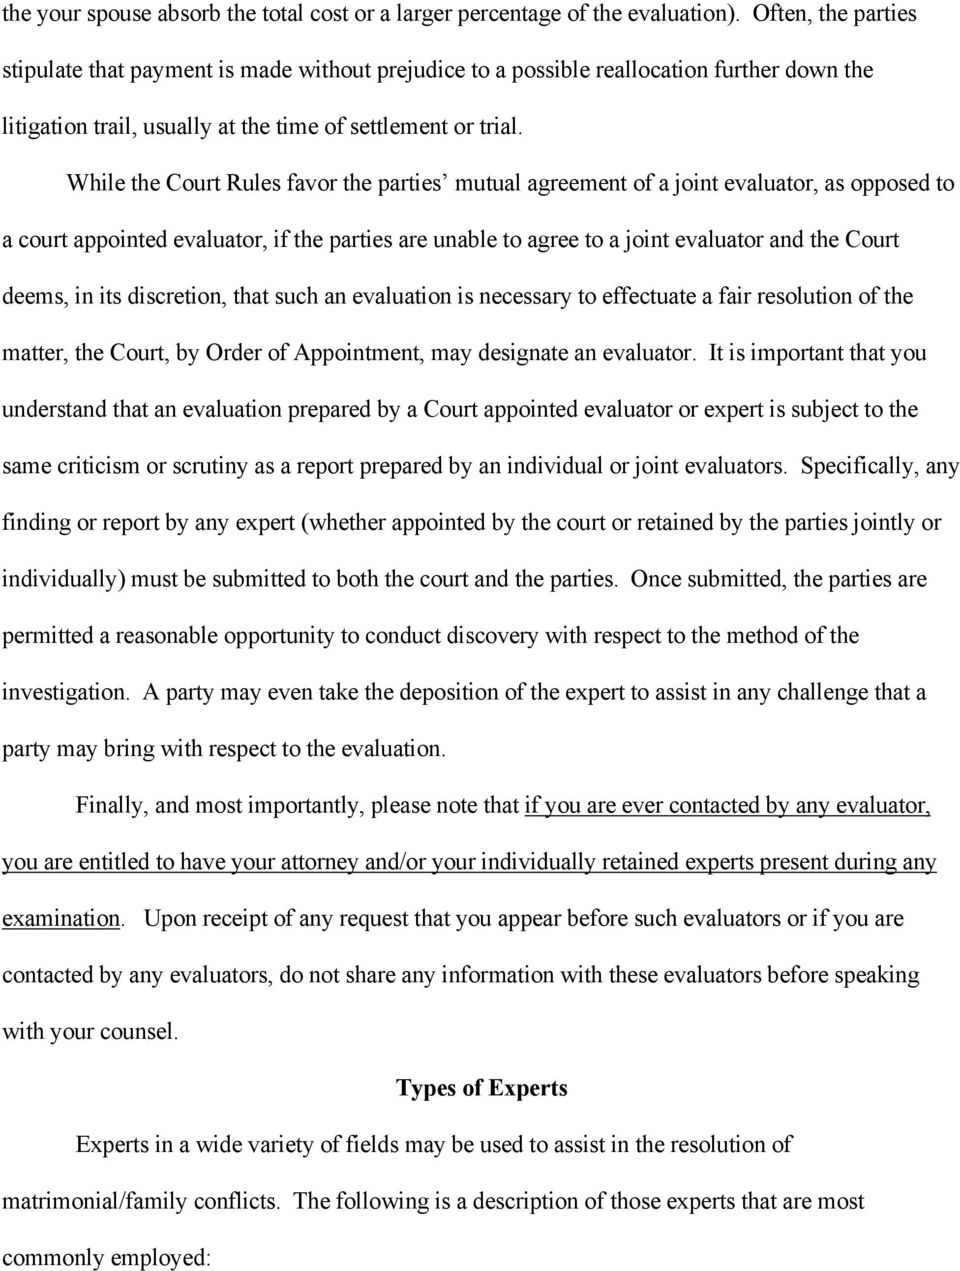 While the Court Rules favor the parties mutual agreement of a joint evaluator, as opposed to a court appointed evaluator, if the parties are unable to agree to a joint evaluator and the Court deems,